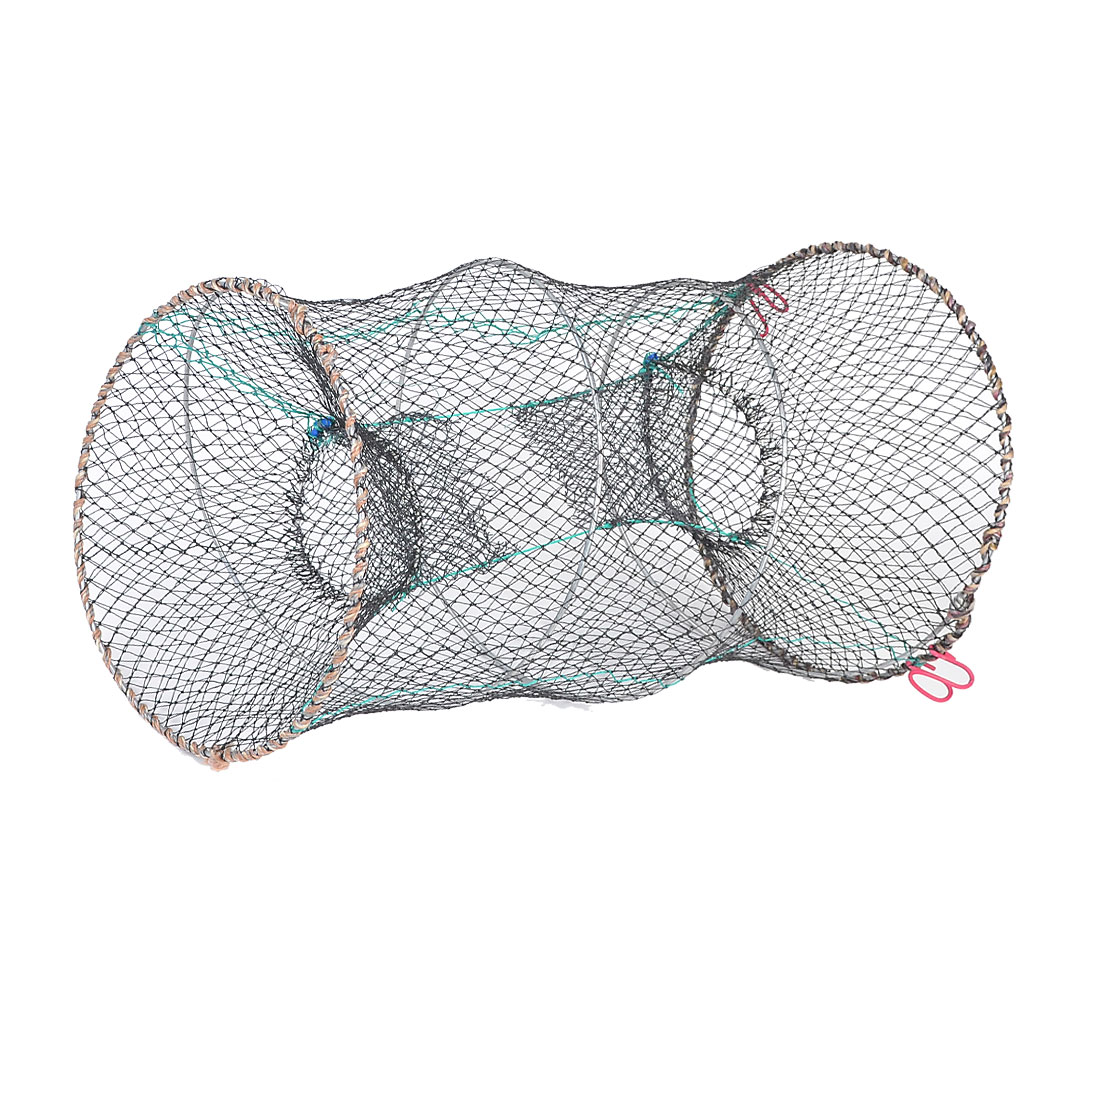 Pond Black Dual Round Entrance 53cm Mesh Net for Shrimp Crawfish Lobster